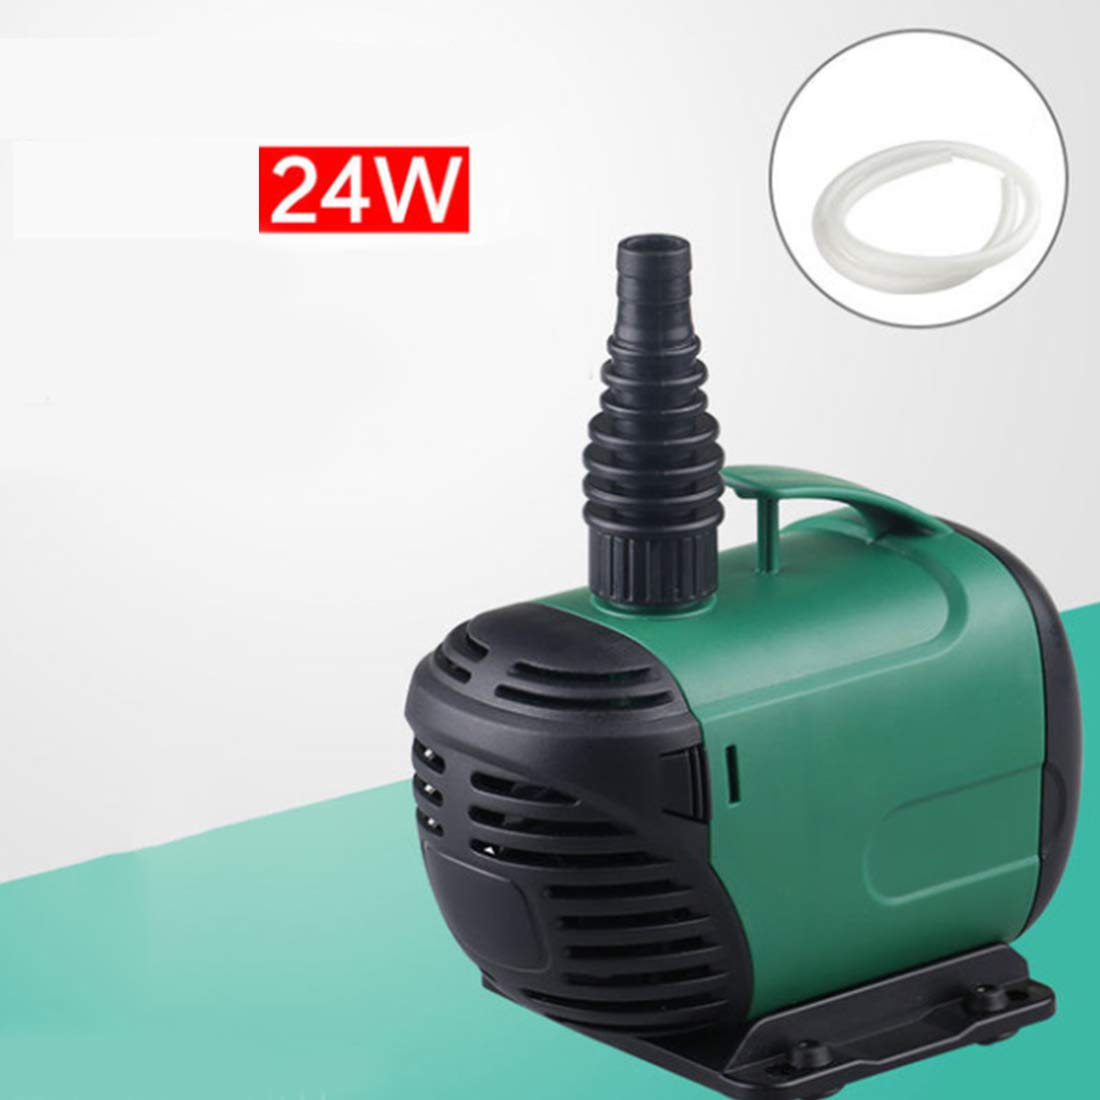 24W WEATLY Submersible Pump 1400L-6800L Hr, Fountain Water Pump for Fish Tank, Hydroponics,Aquarium (Wattage   24W)